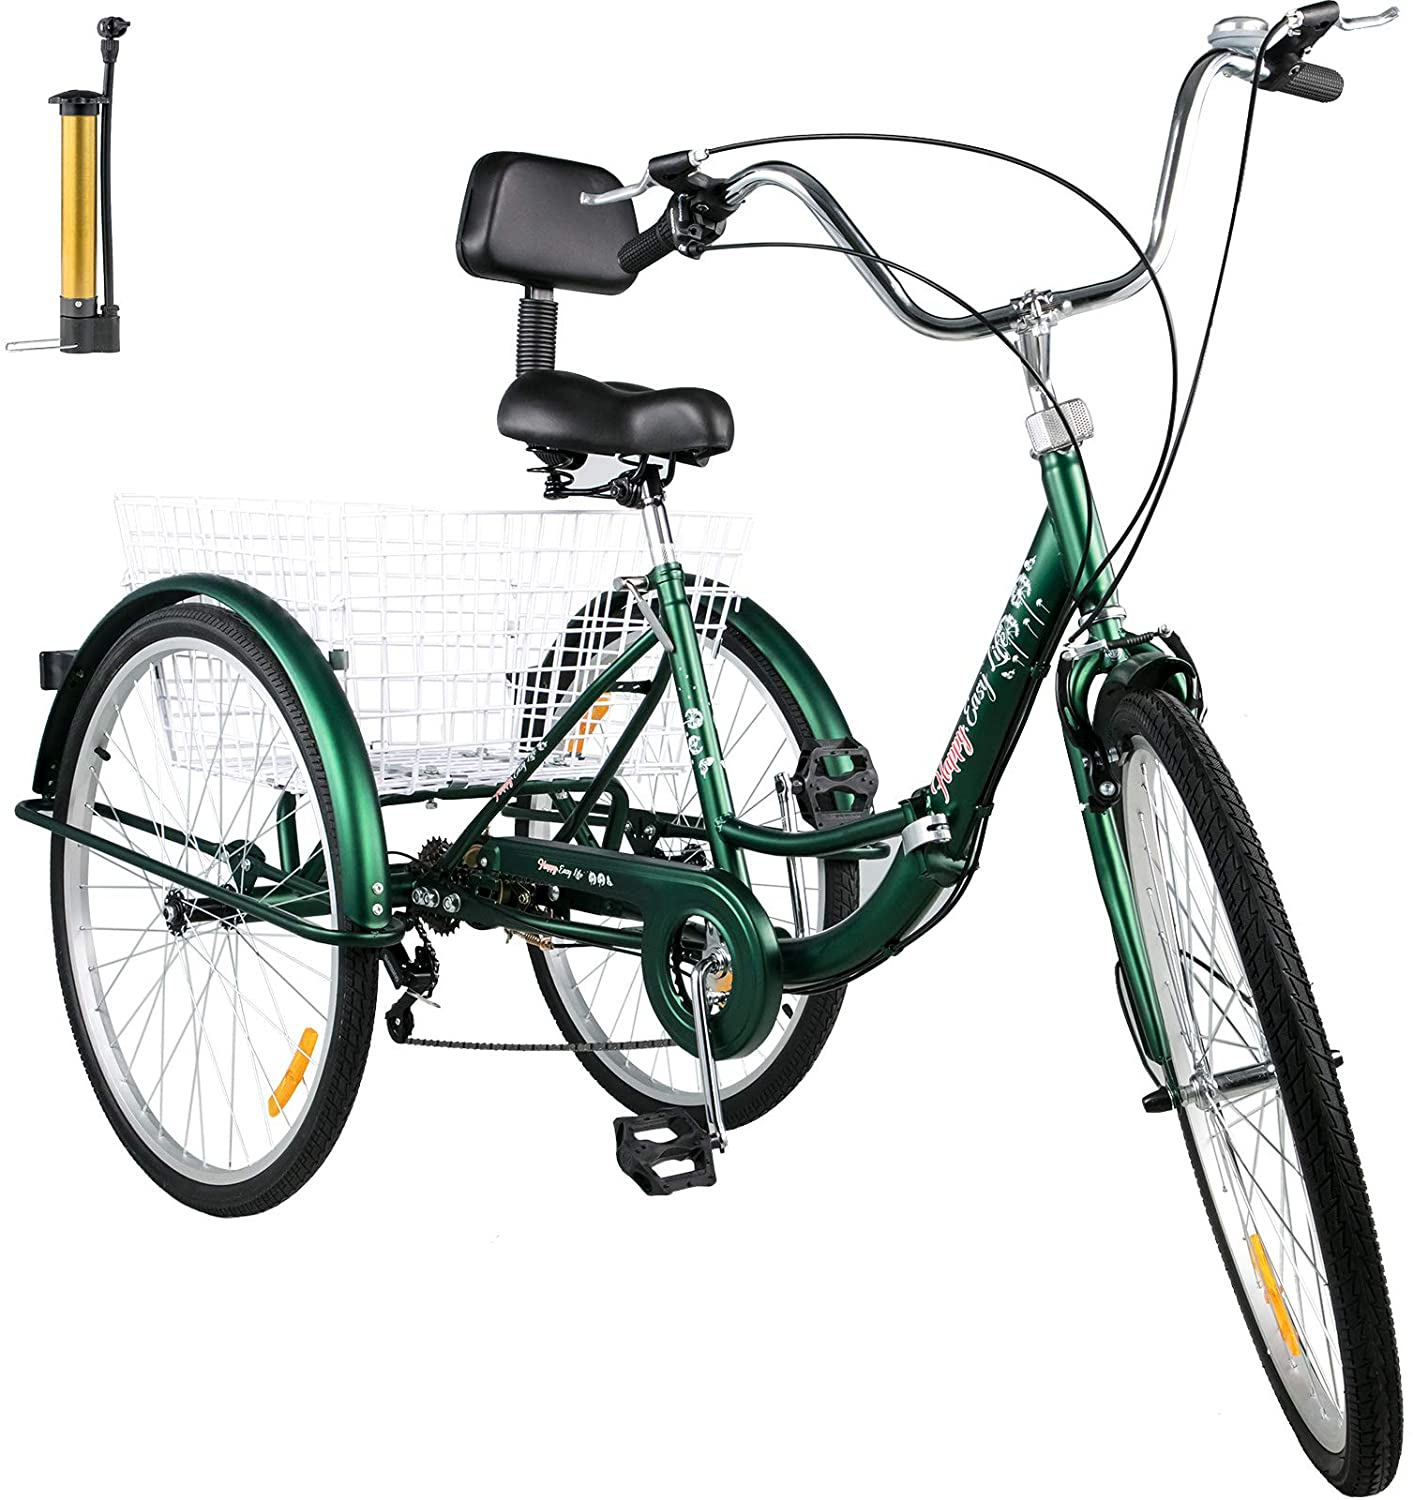 Bkisy Tricycle Adult 26�� 7-Speed 3 Wheel Bikes for Adults Three Wheel Bike for Adults Adult Trike Adult Folding Tricycle Foldable Adult Tricycle 3 Wheel Bike Trike for Adults